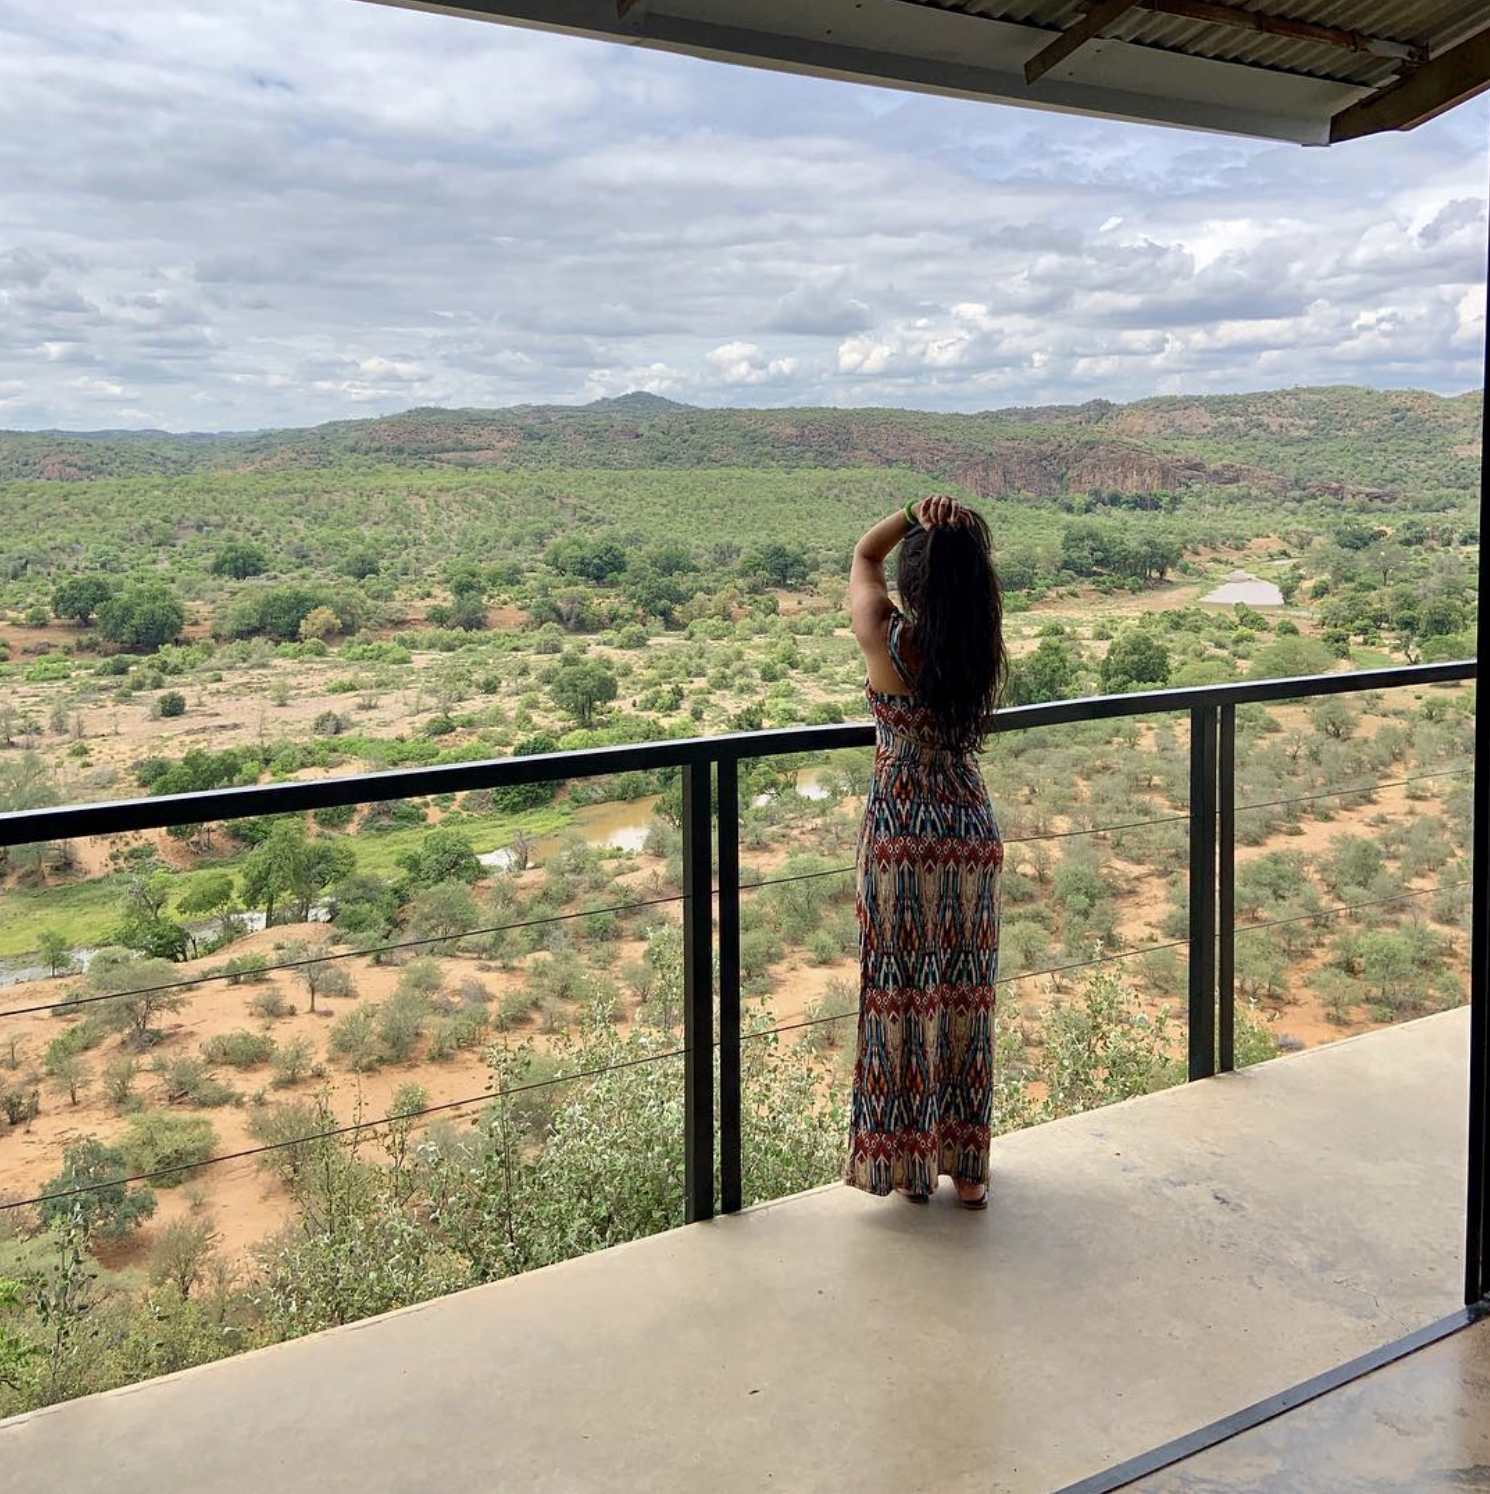 First thing on the agenda upon arrival at The Outpost Lodge? Get acquainted with your luxury space and take in the expansive views.   @dharadaily   is pictured here doing just that.